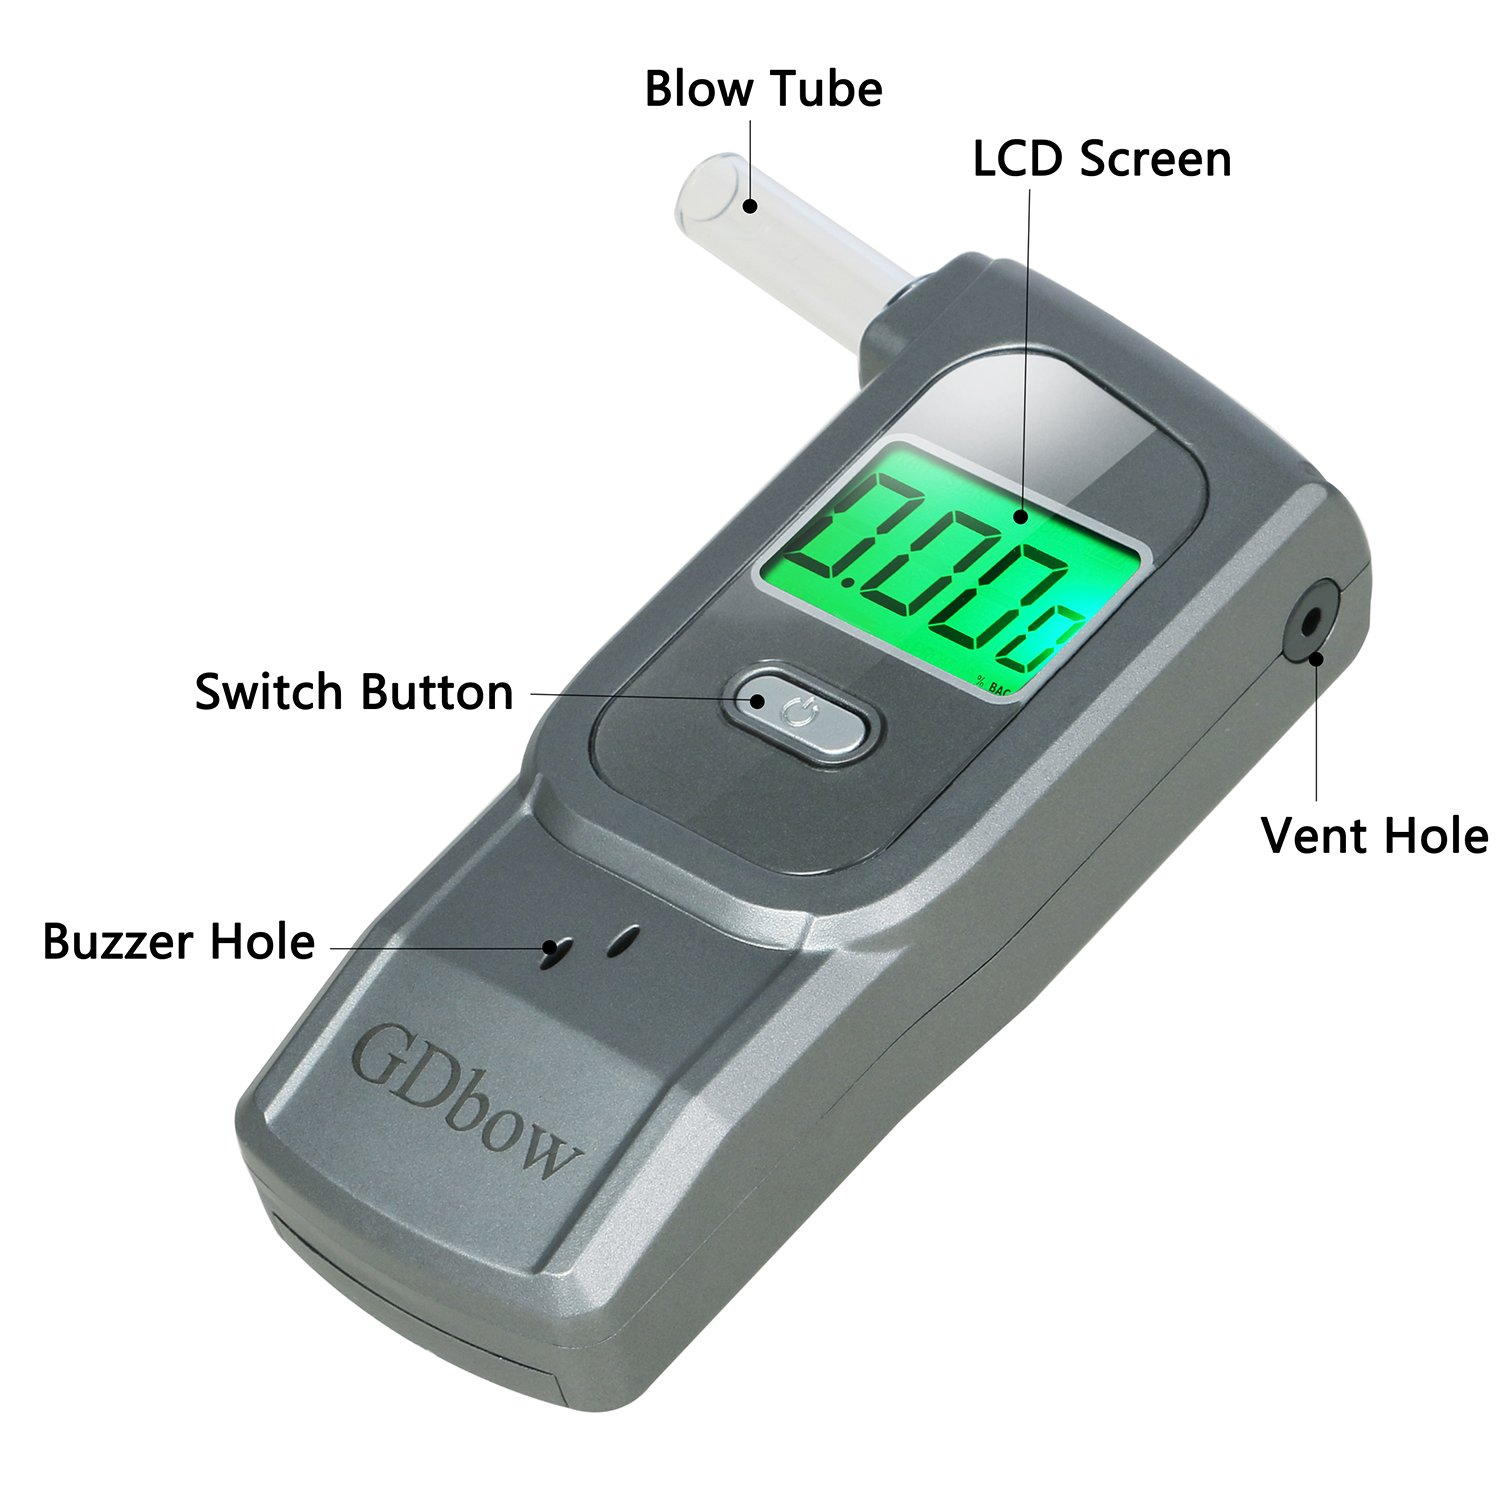 GDbow PortableBreathalyzer AlcoholTester Recording 32 Testing Results with 5 Mouthpieces for Personal Use -Grey by GDbow (Image #5)